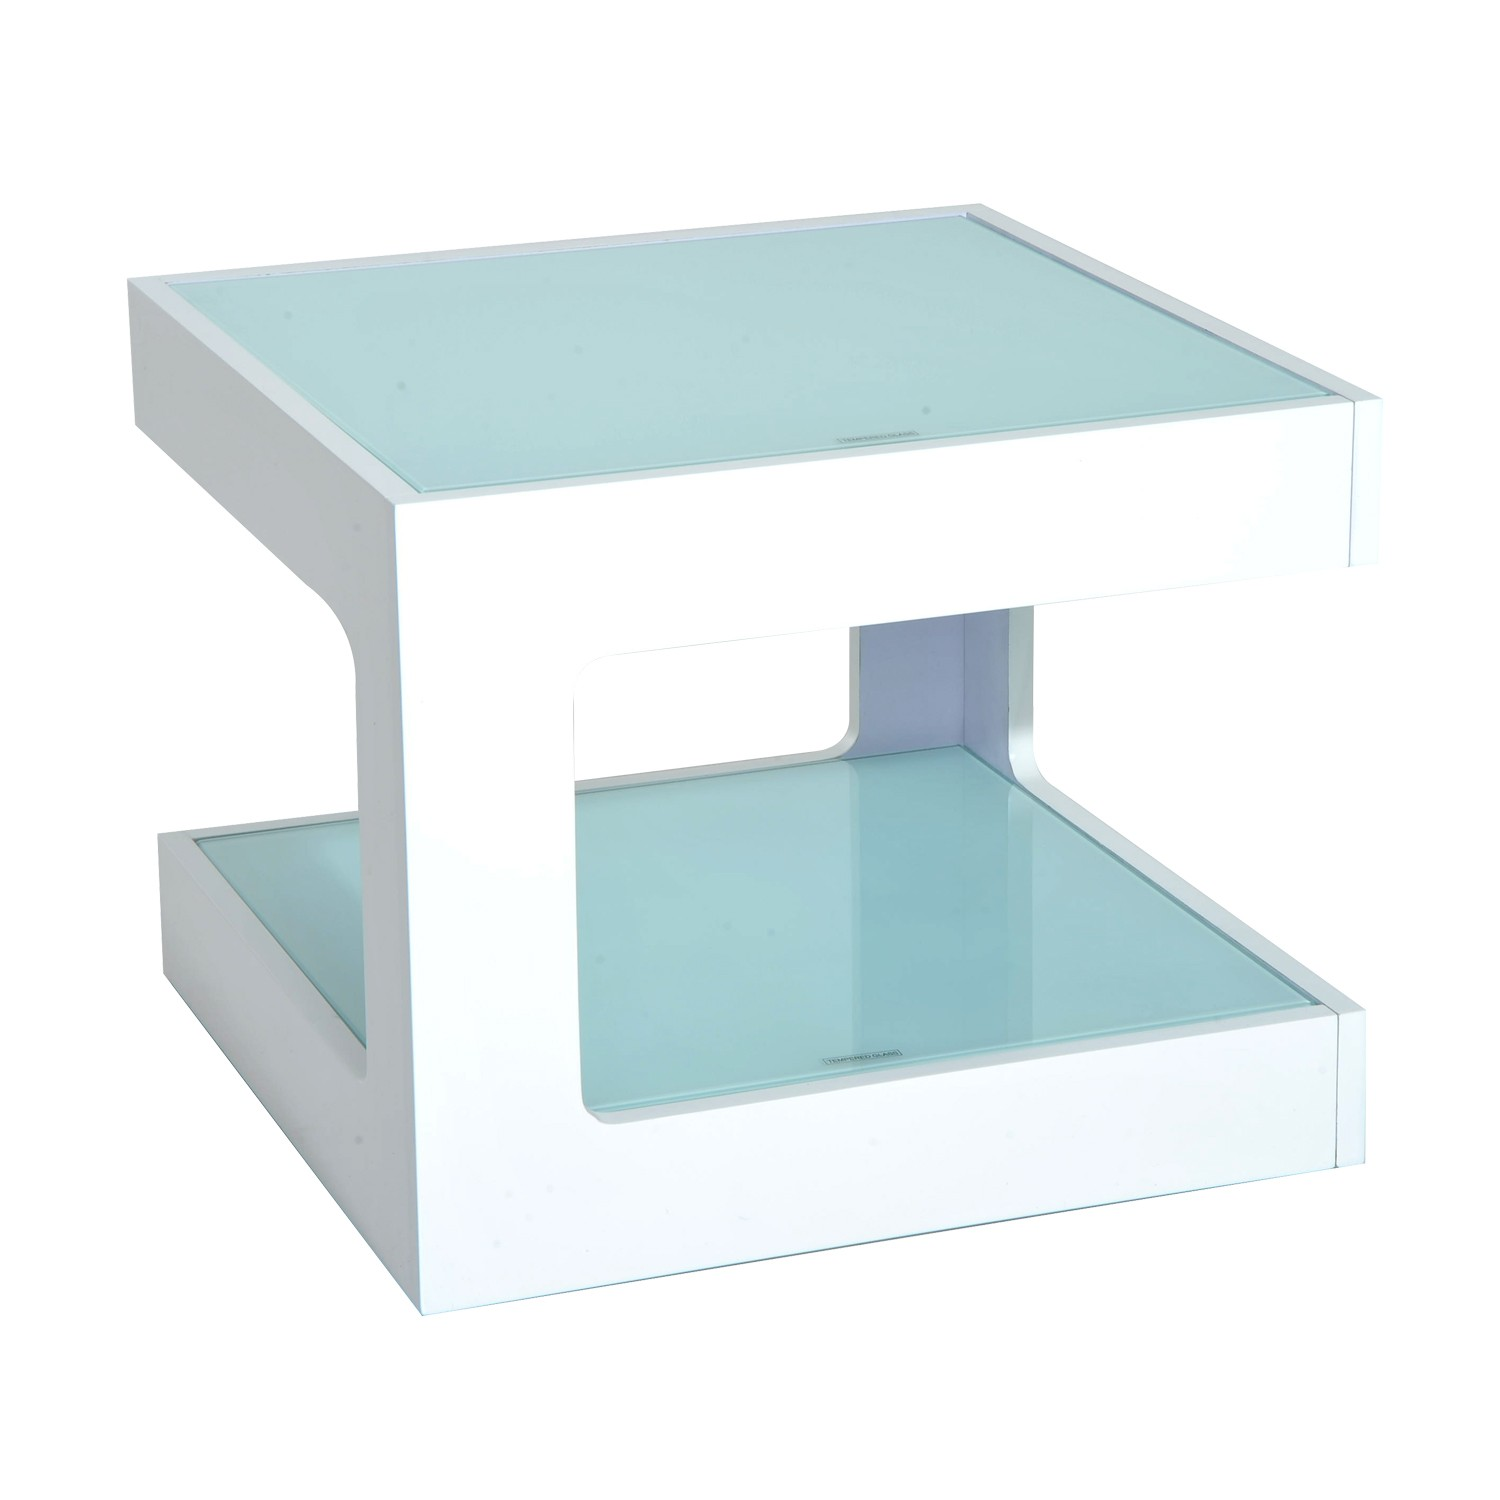 homcom modern glass top cube end accent table tables iron teal home goods touch lamps target tread plates wooden door thresholds pub dining set ashley furniture round coffee with